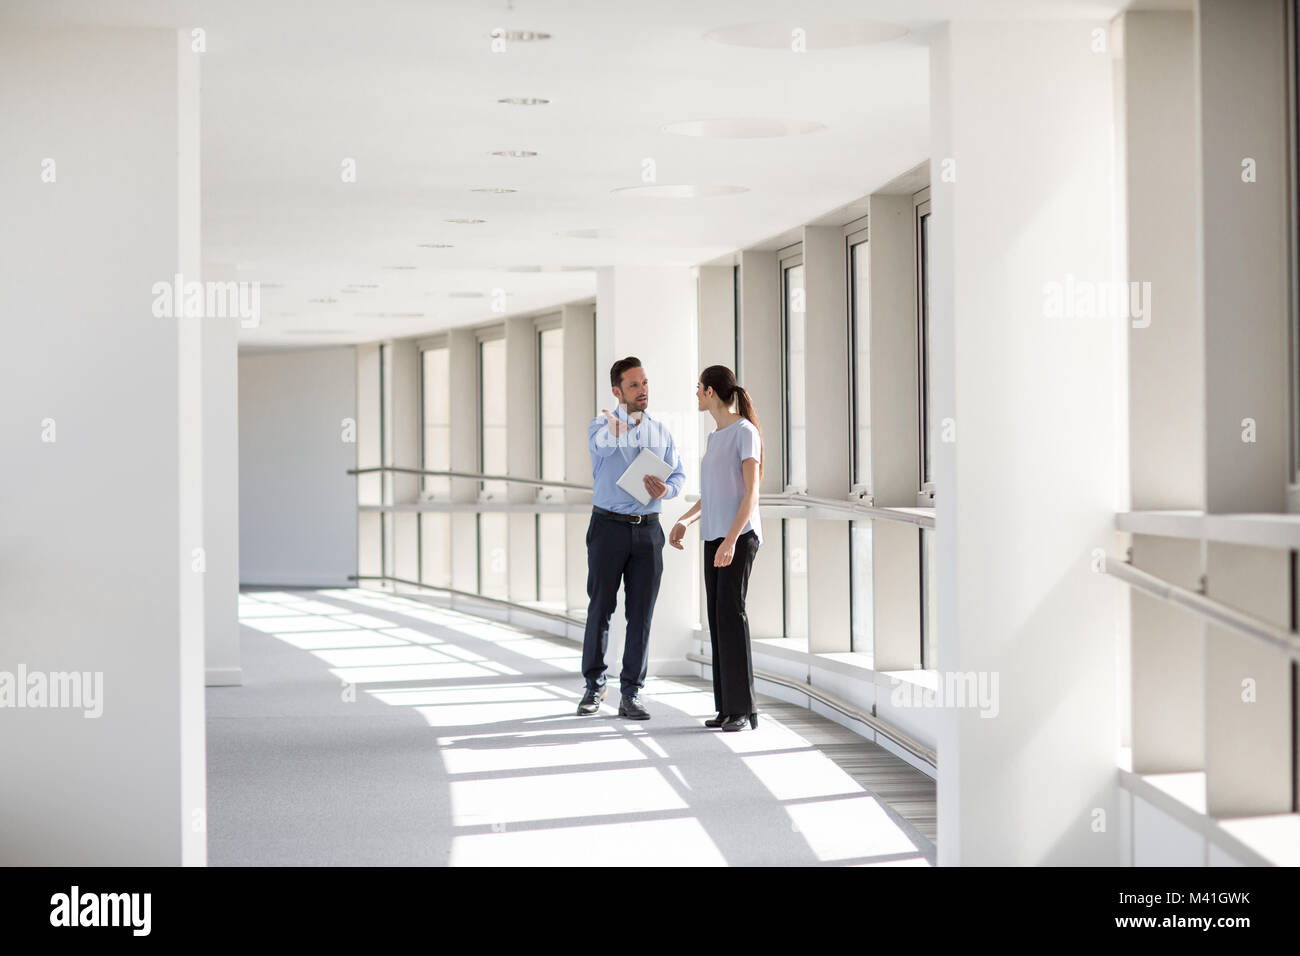 Businessman welcoming new employee to office - Stock Image